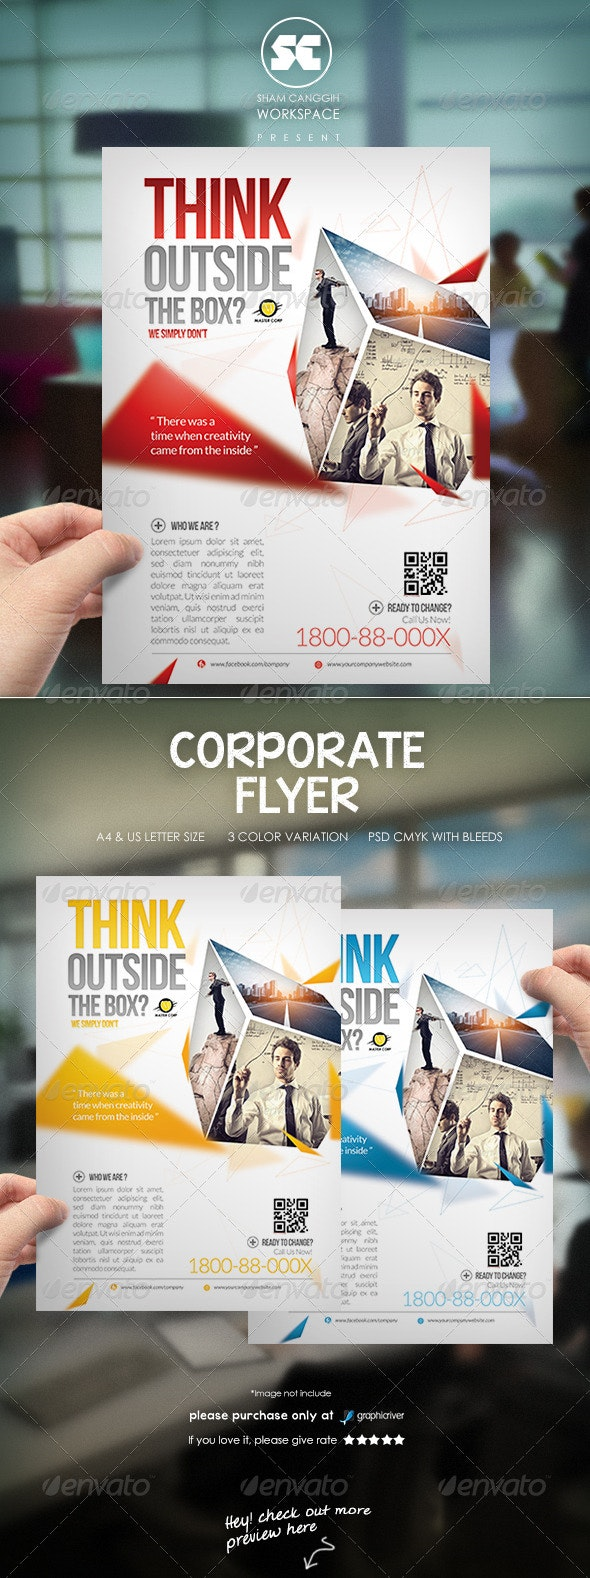 Modern Corporate Flyer / Magazine Ads - Corporate Flyers